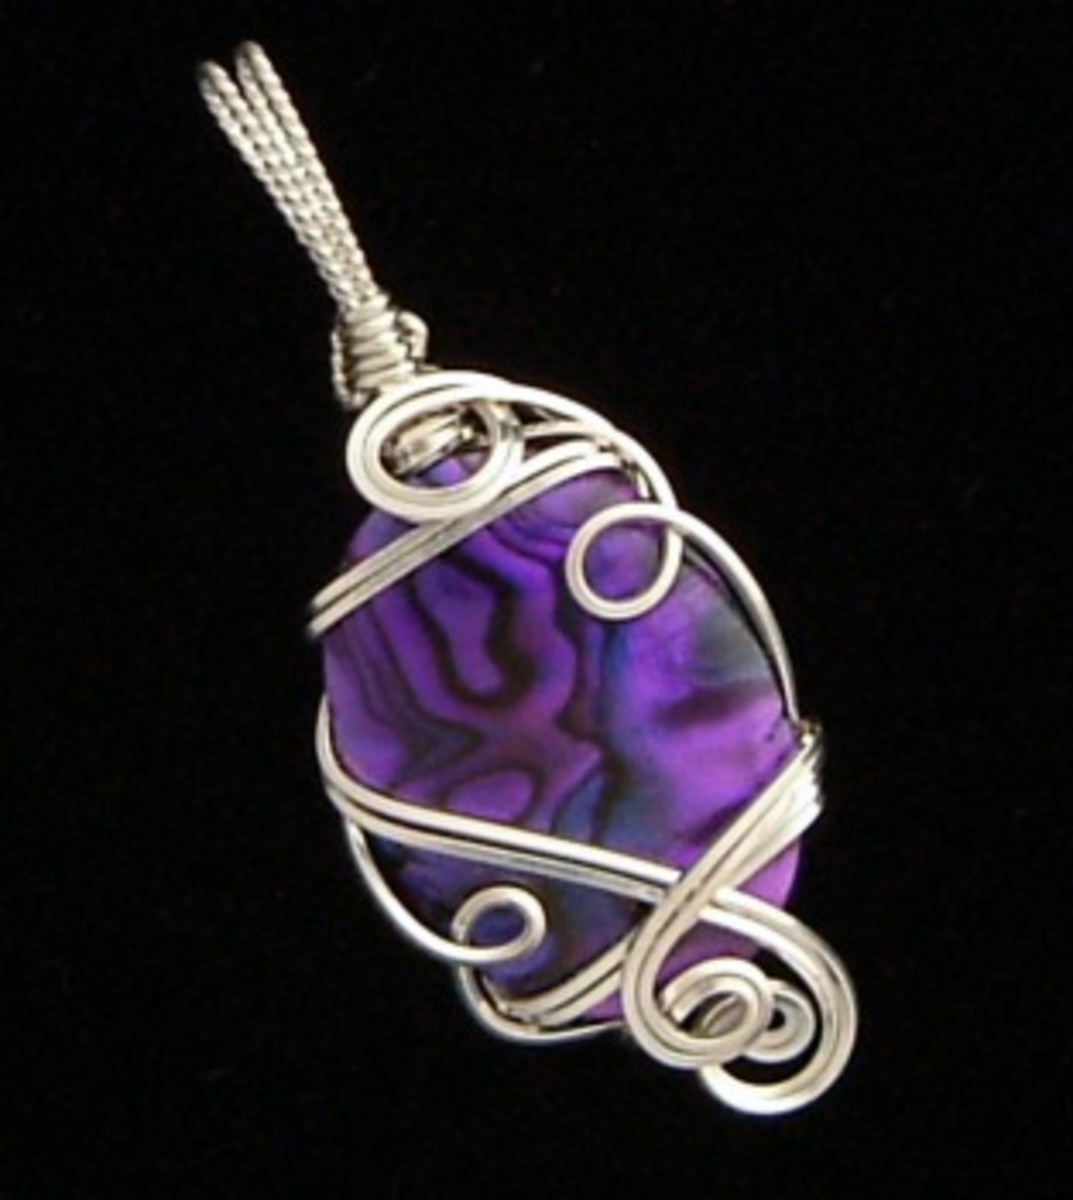 One of my sterling silver wire pendants